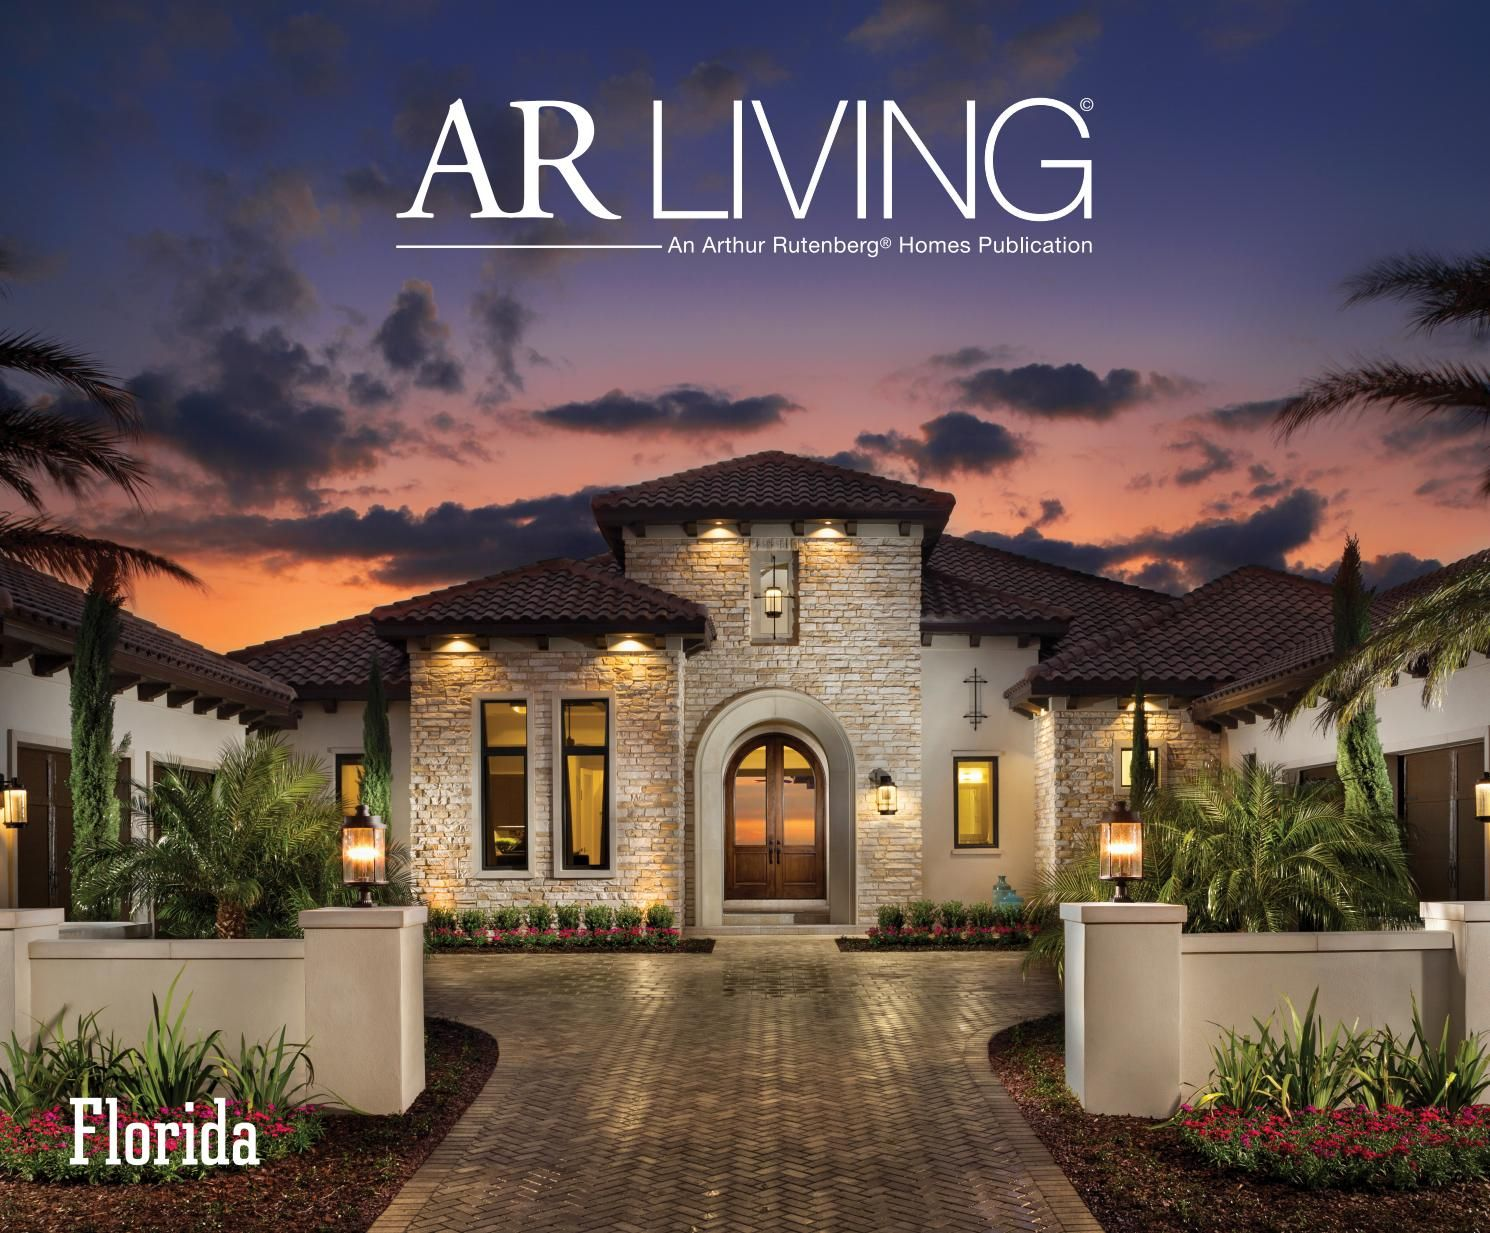 Ar Living Florida Issue 3 House And Home Magazine Luxury House Plans Arthur Rutenberg Homes